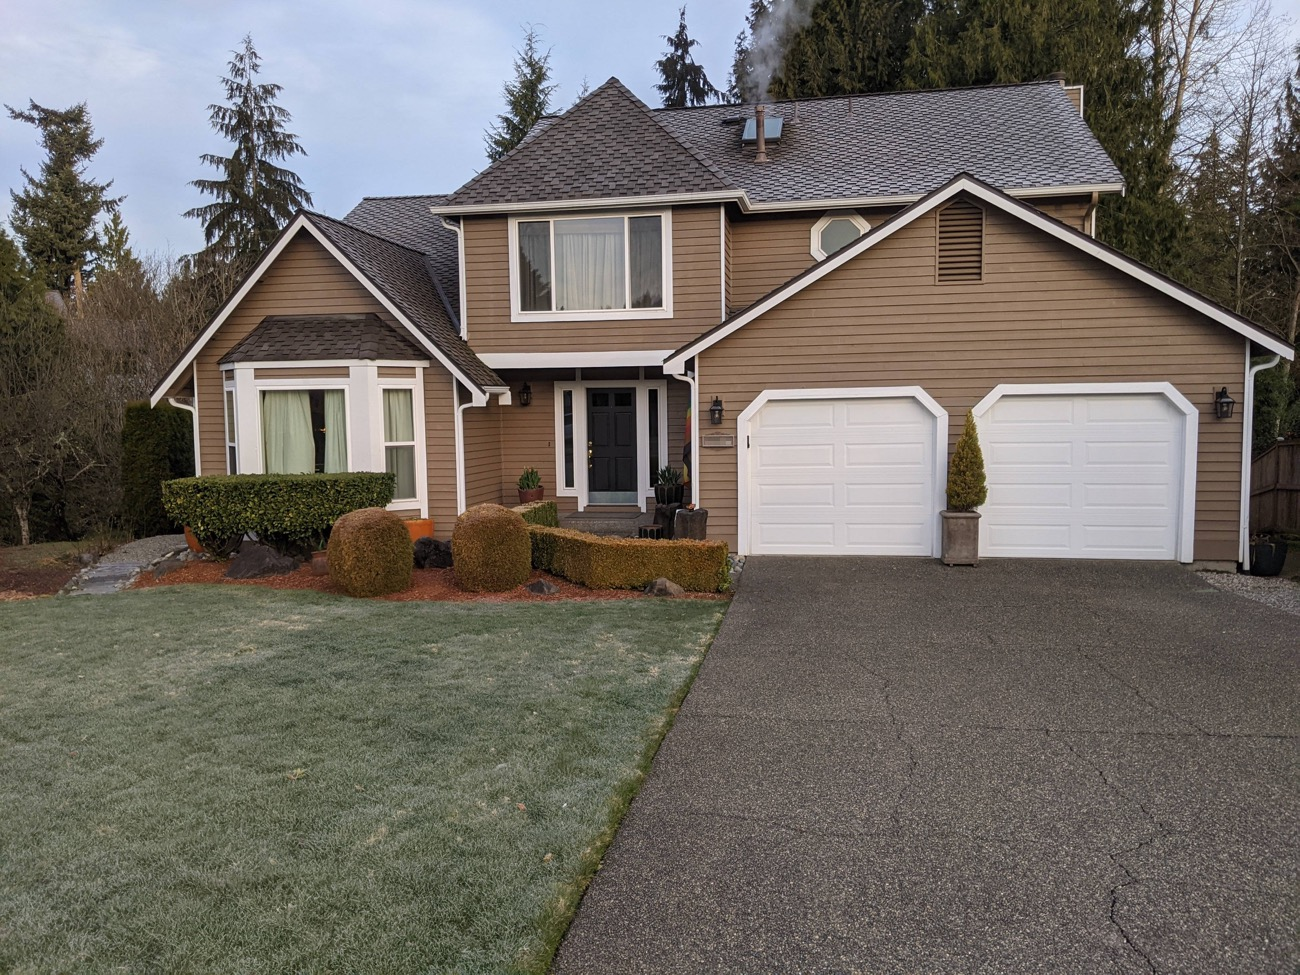 House in Renton